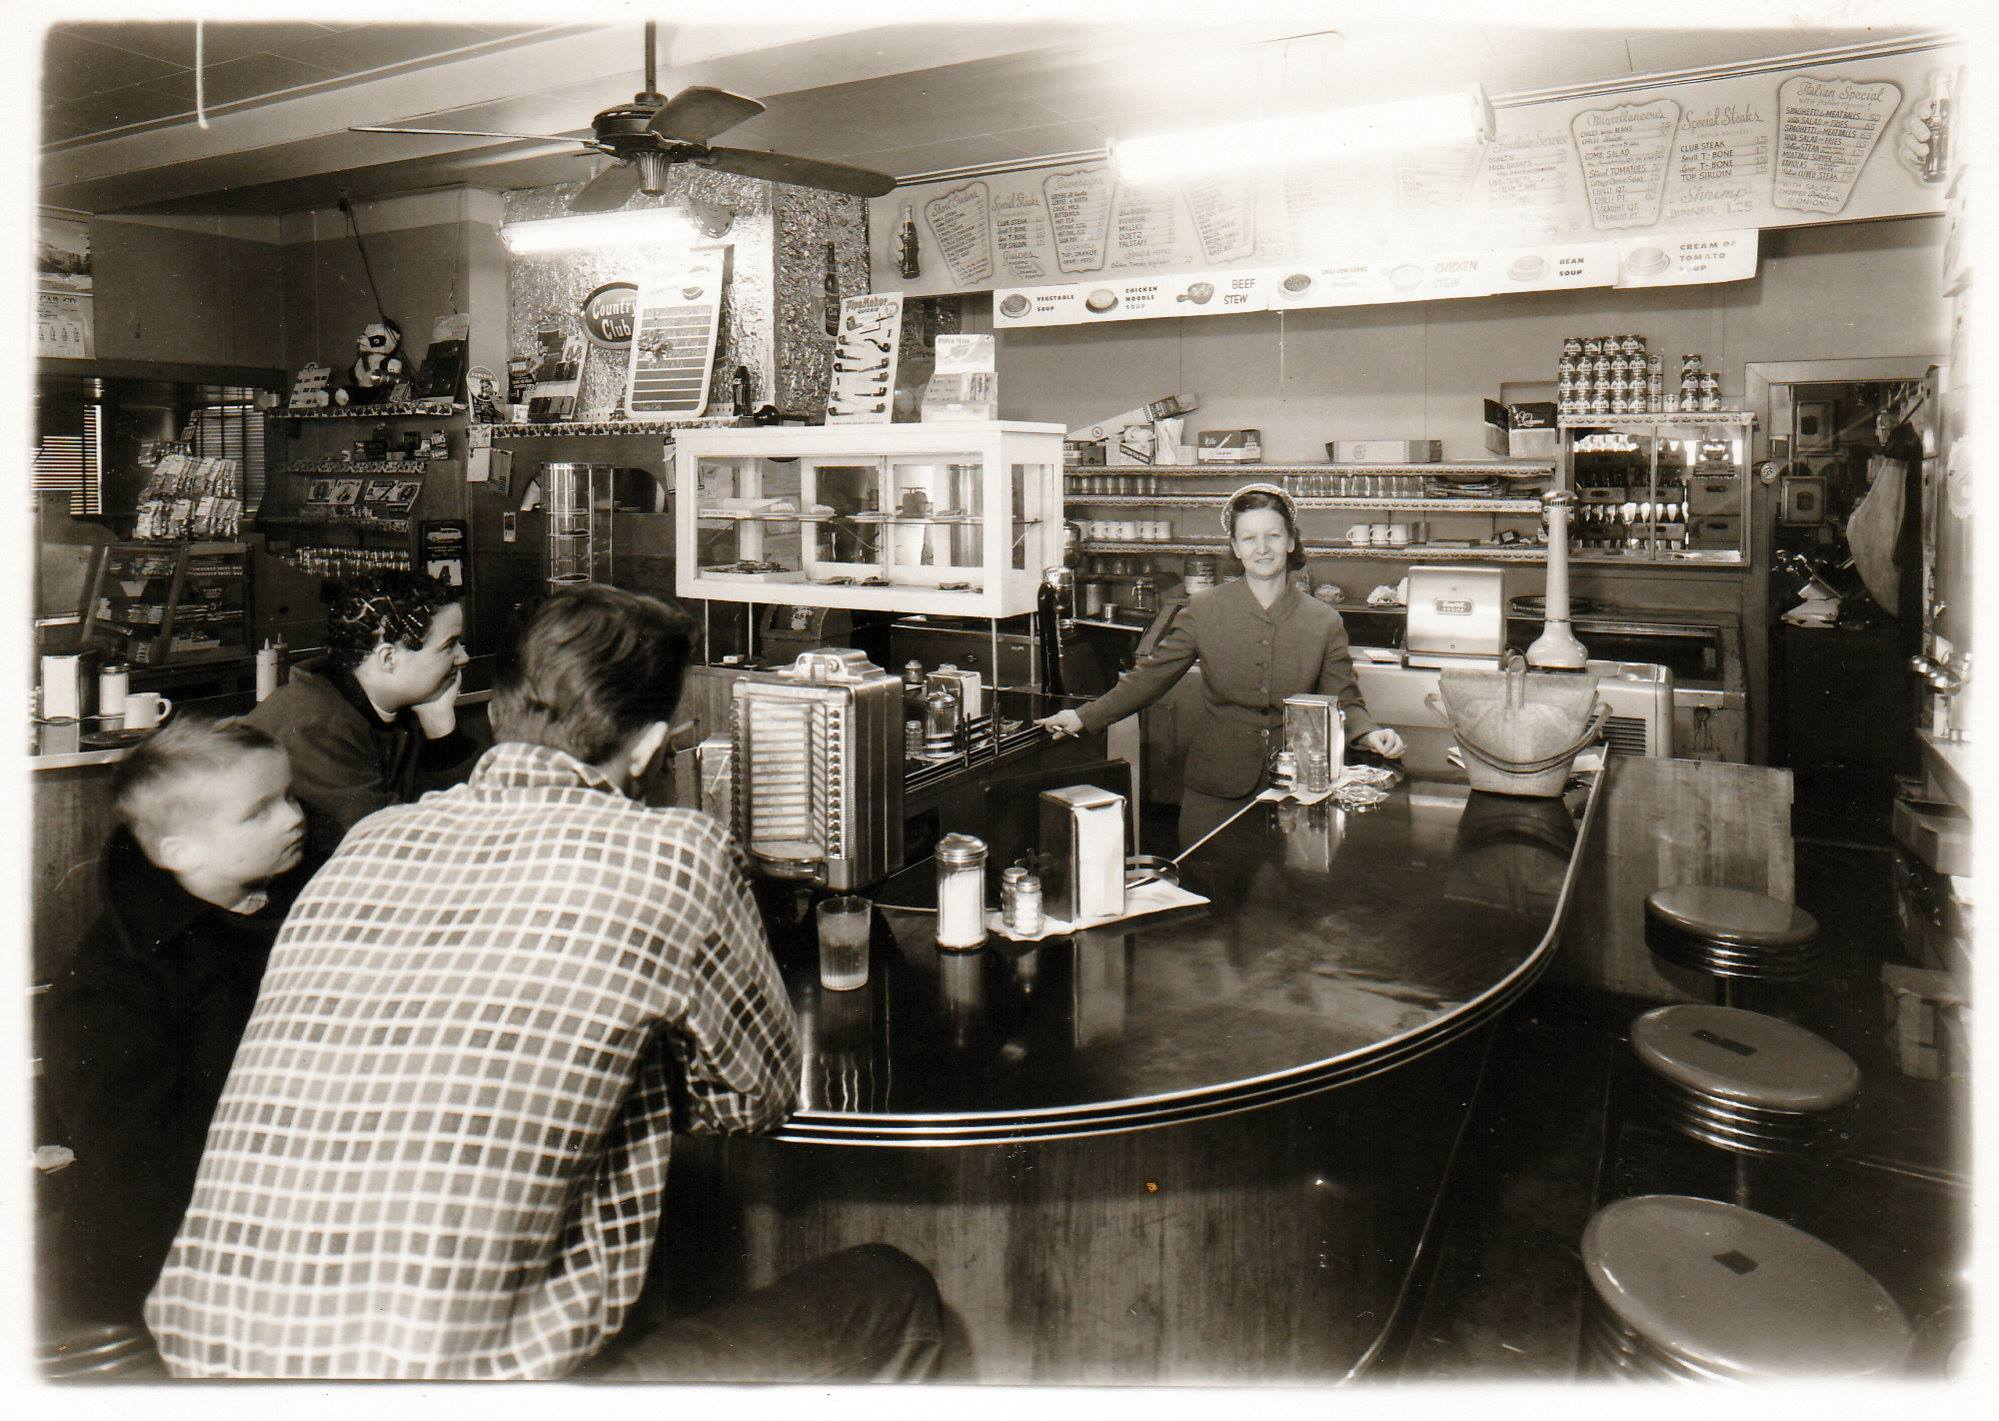 The music box 19th and Frederick,Violet Pinzino behind the counter.